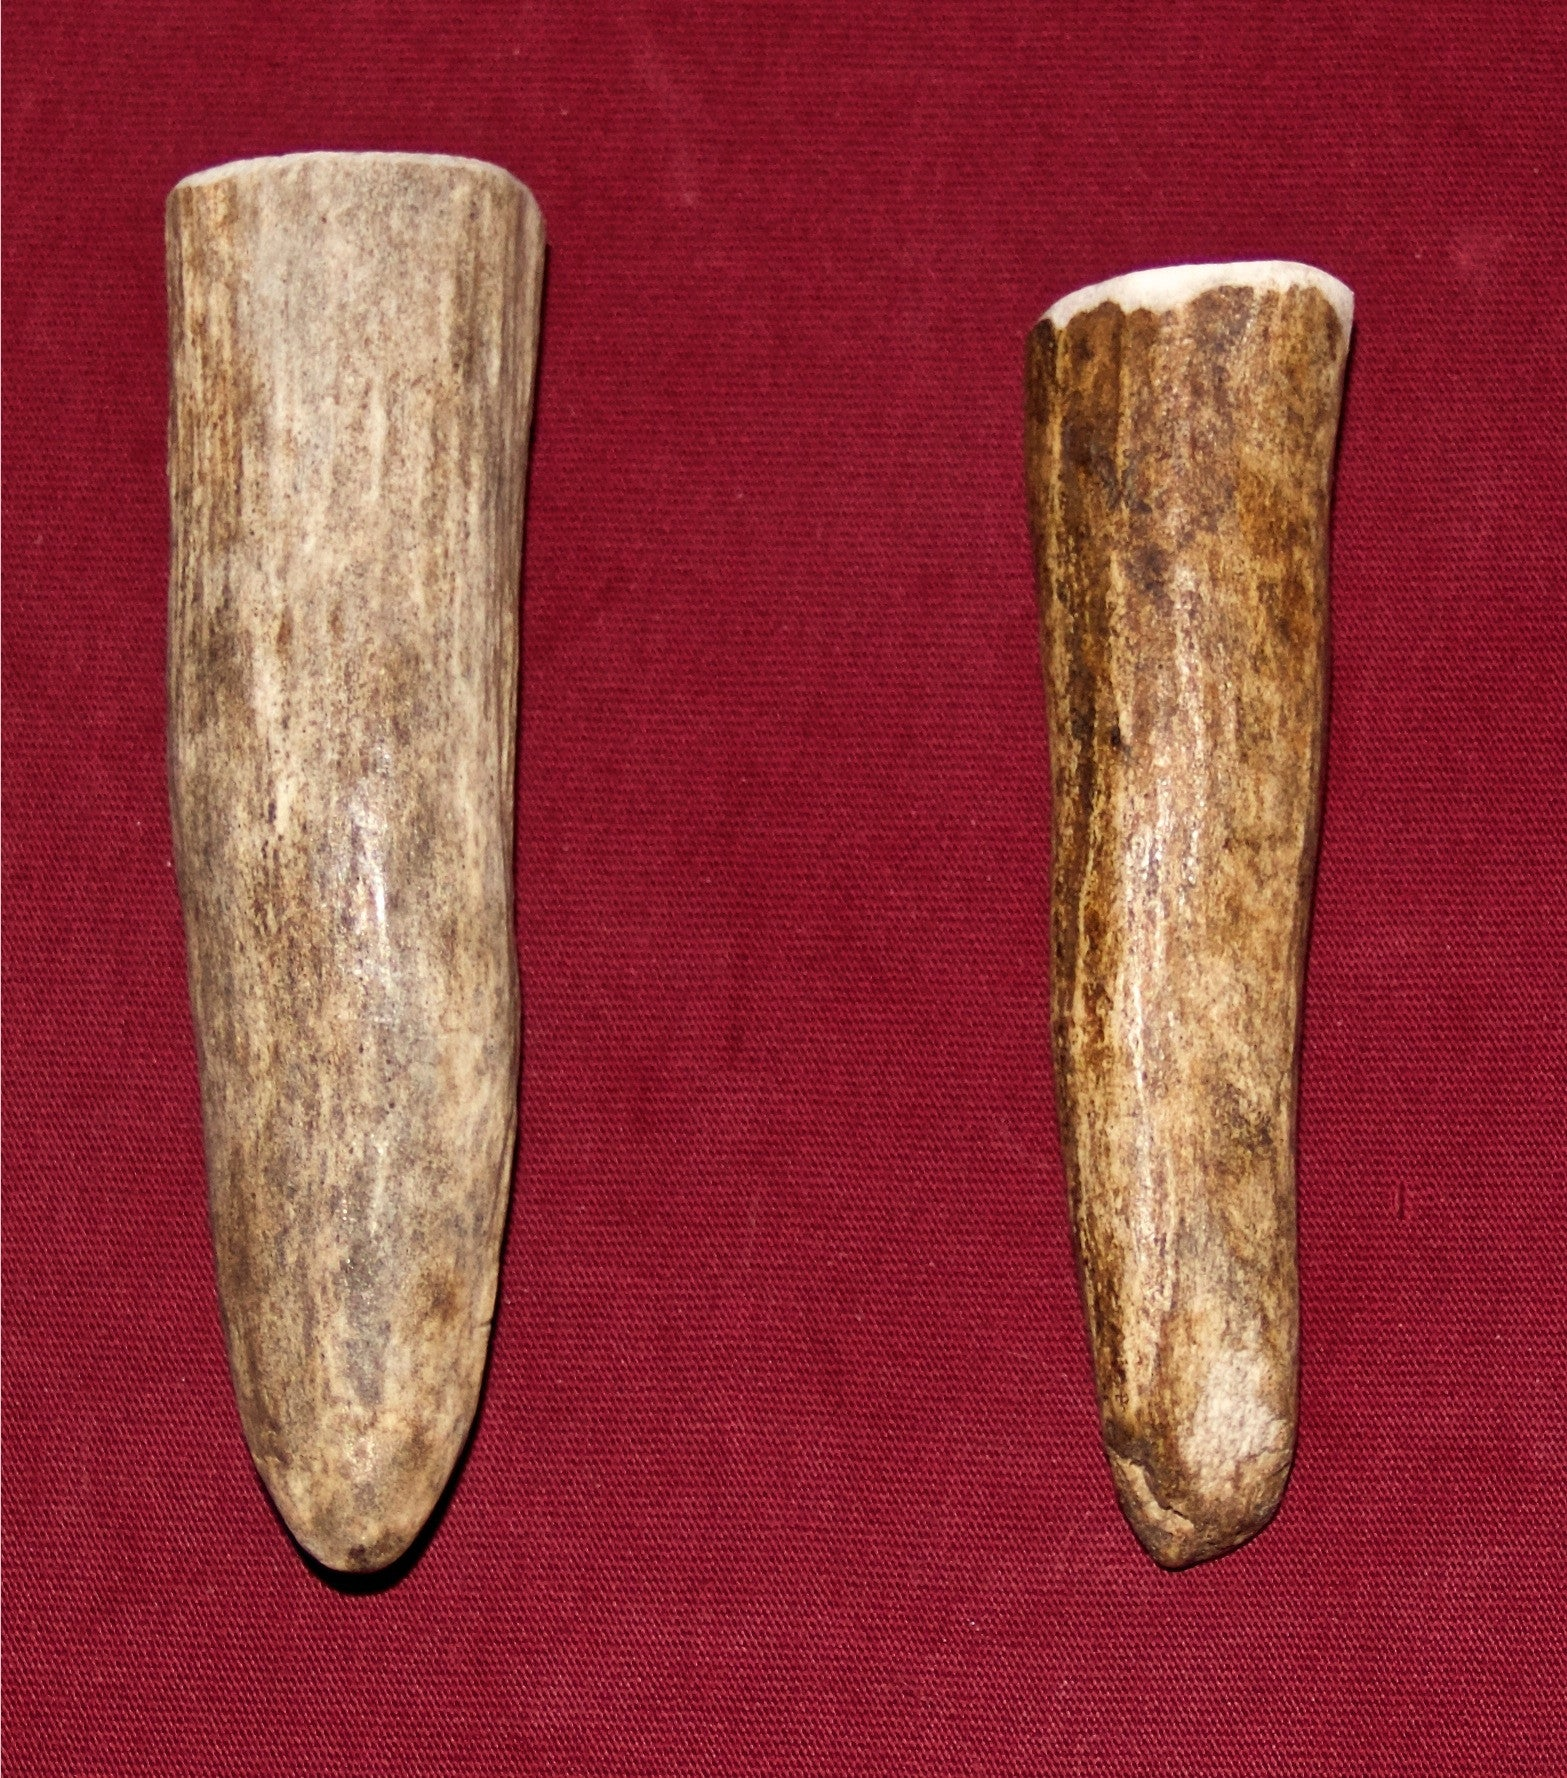 Small Moose Antler For Dogs Up to 10 Pounds